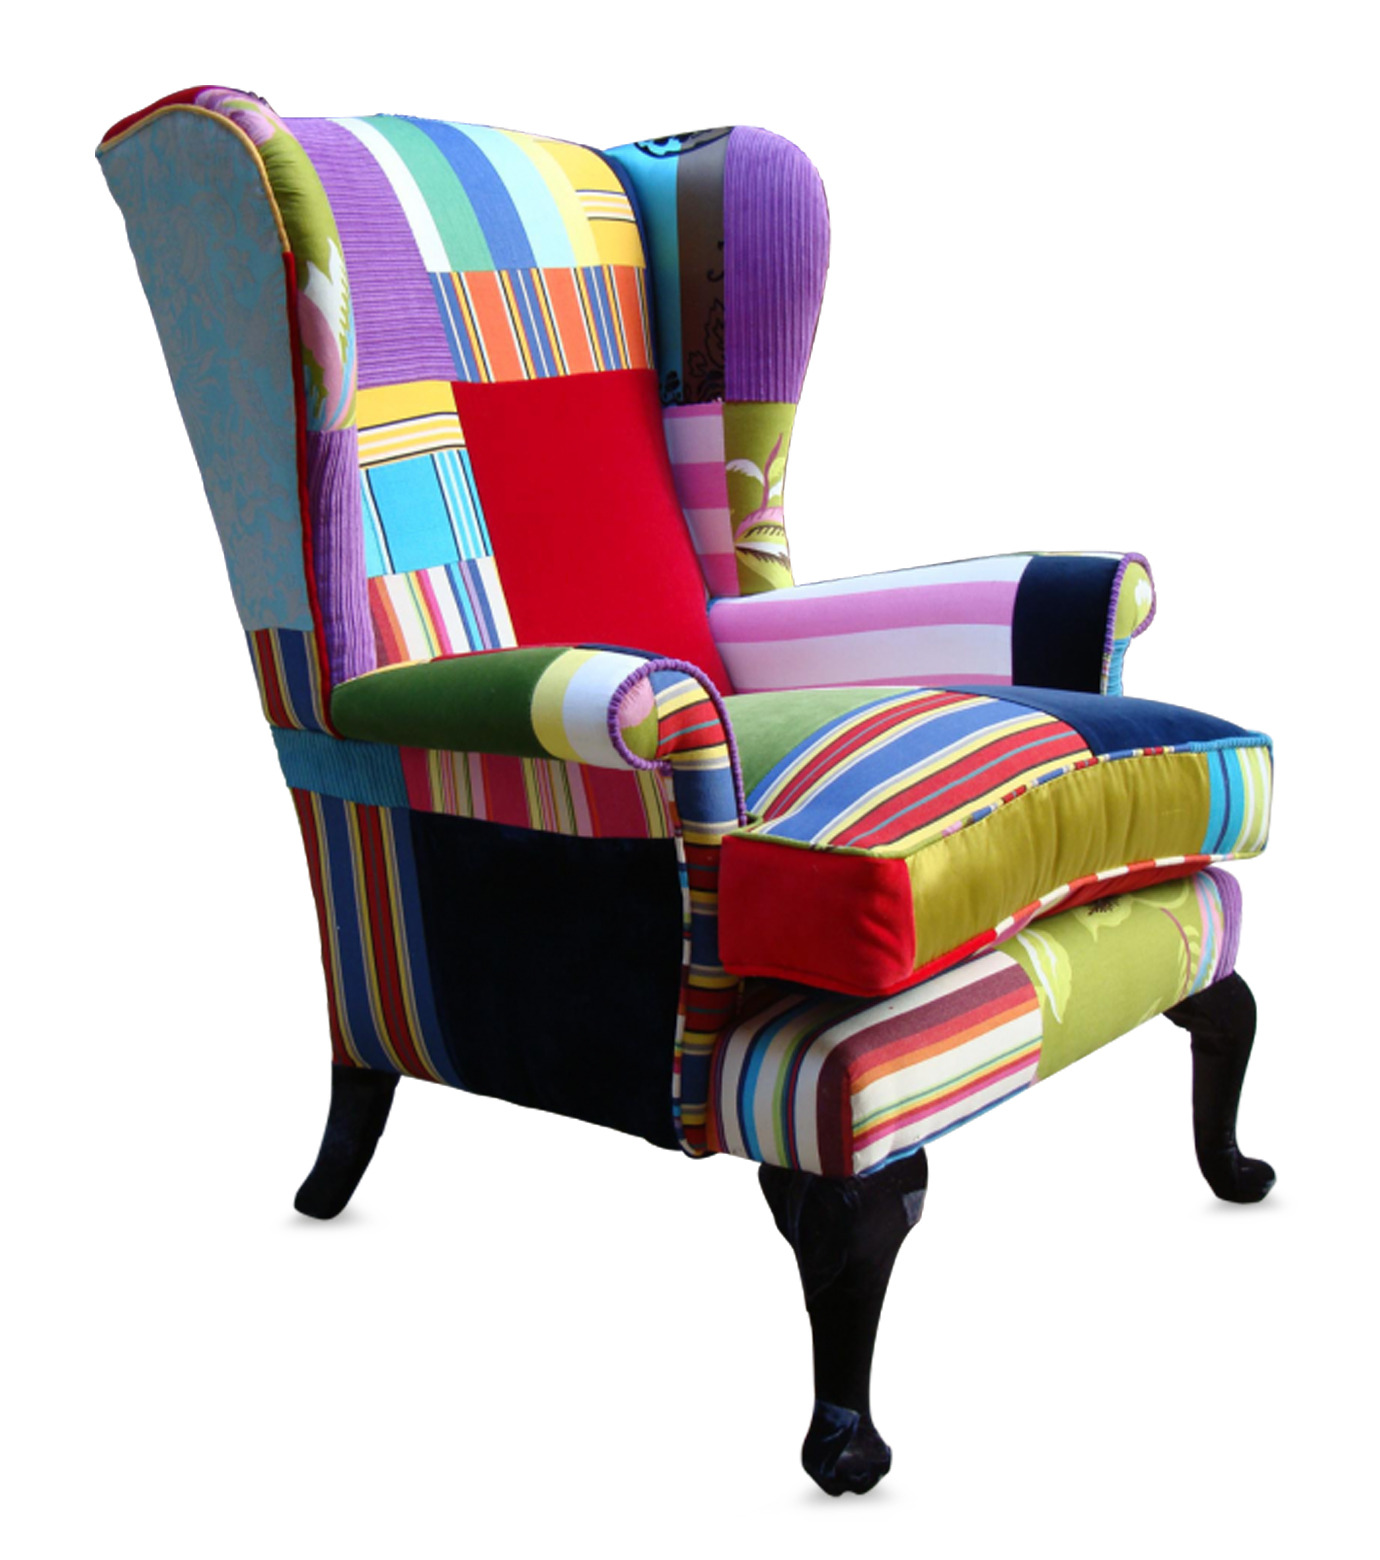 Squintlimited(スクイントリミテッド)のParker Knoll chair-NONE-11-0 拡大詳細画像4